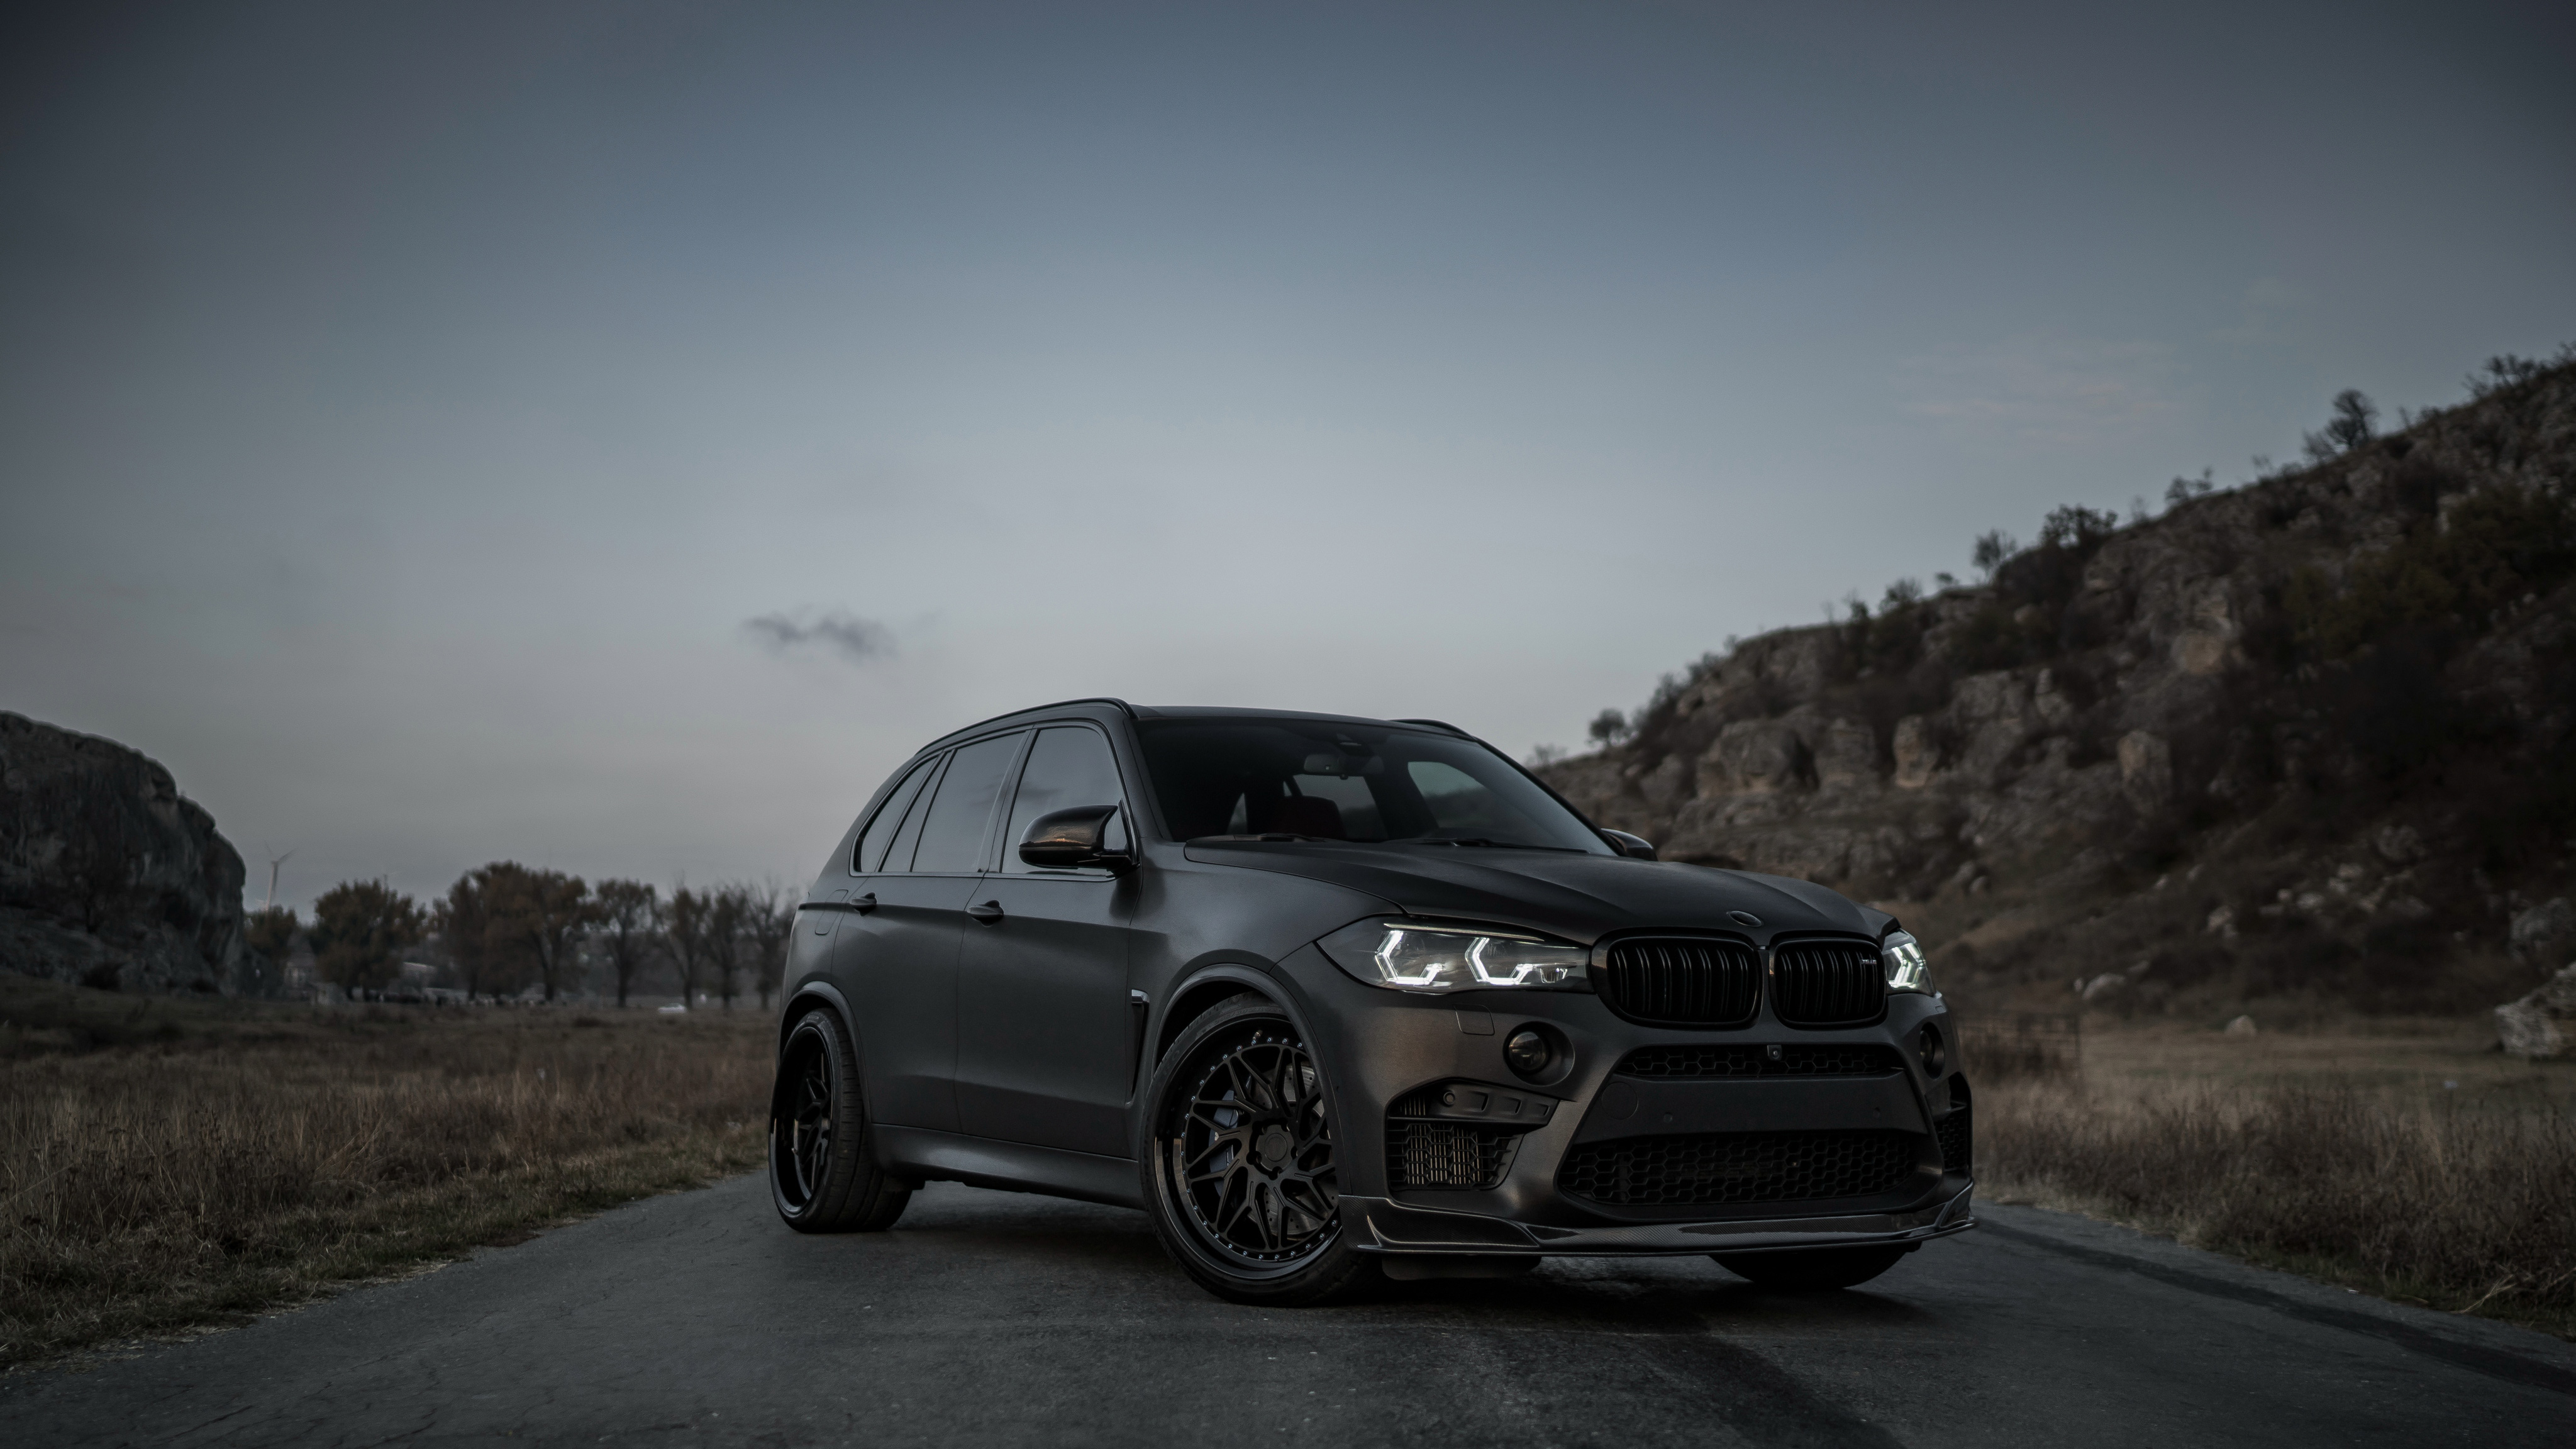 Z Performance Bmw X5 2018 4k Hd Cars 4k Wallpapers Images